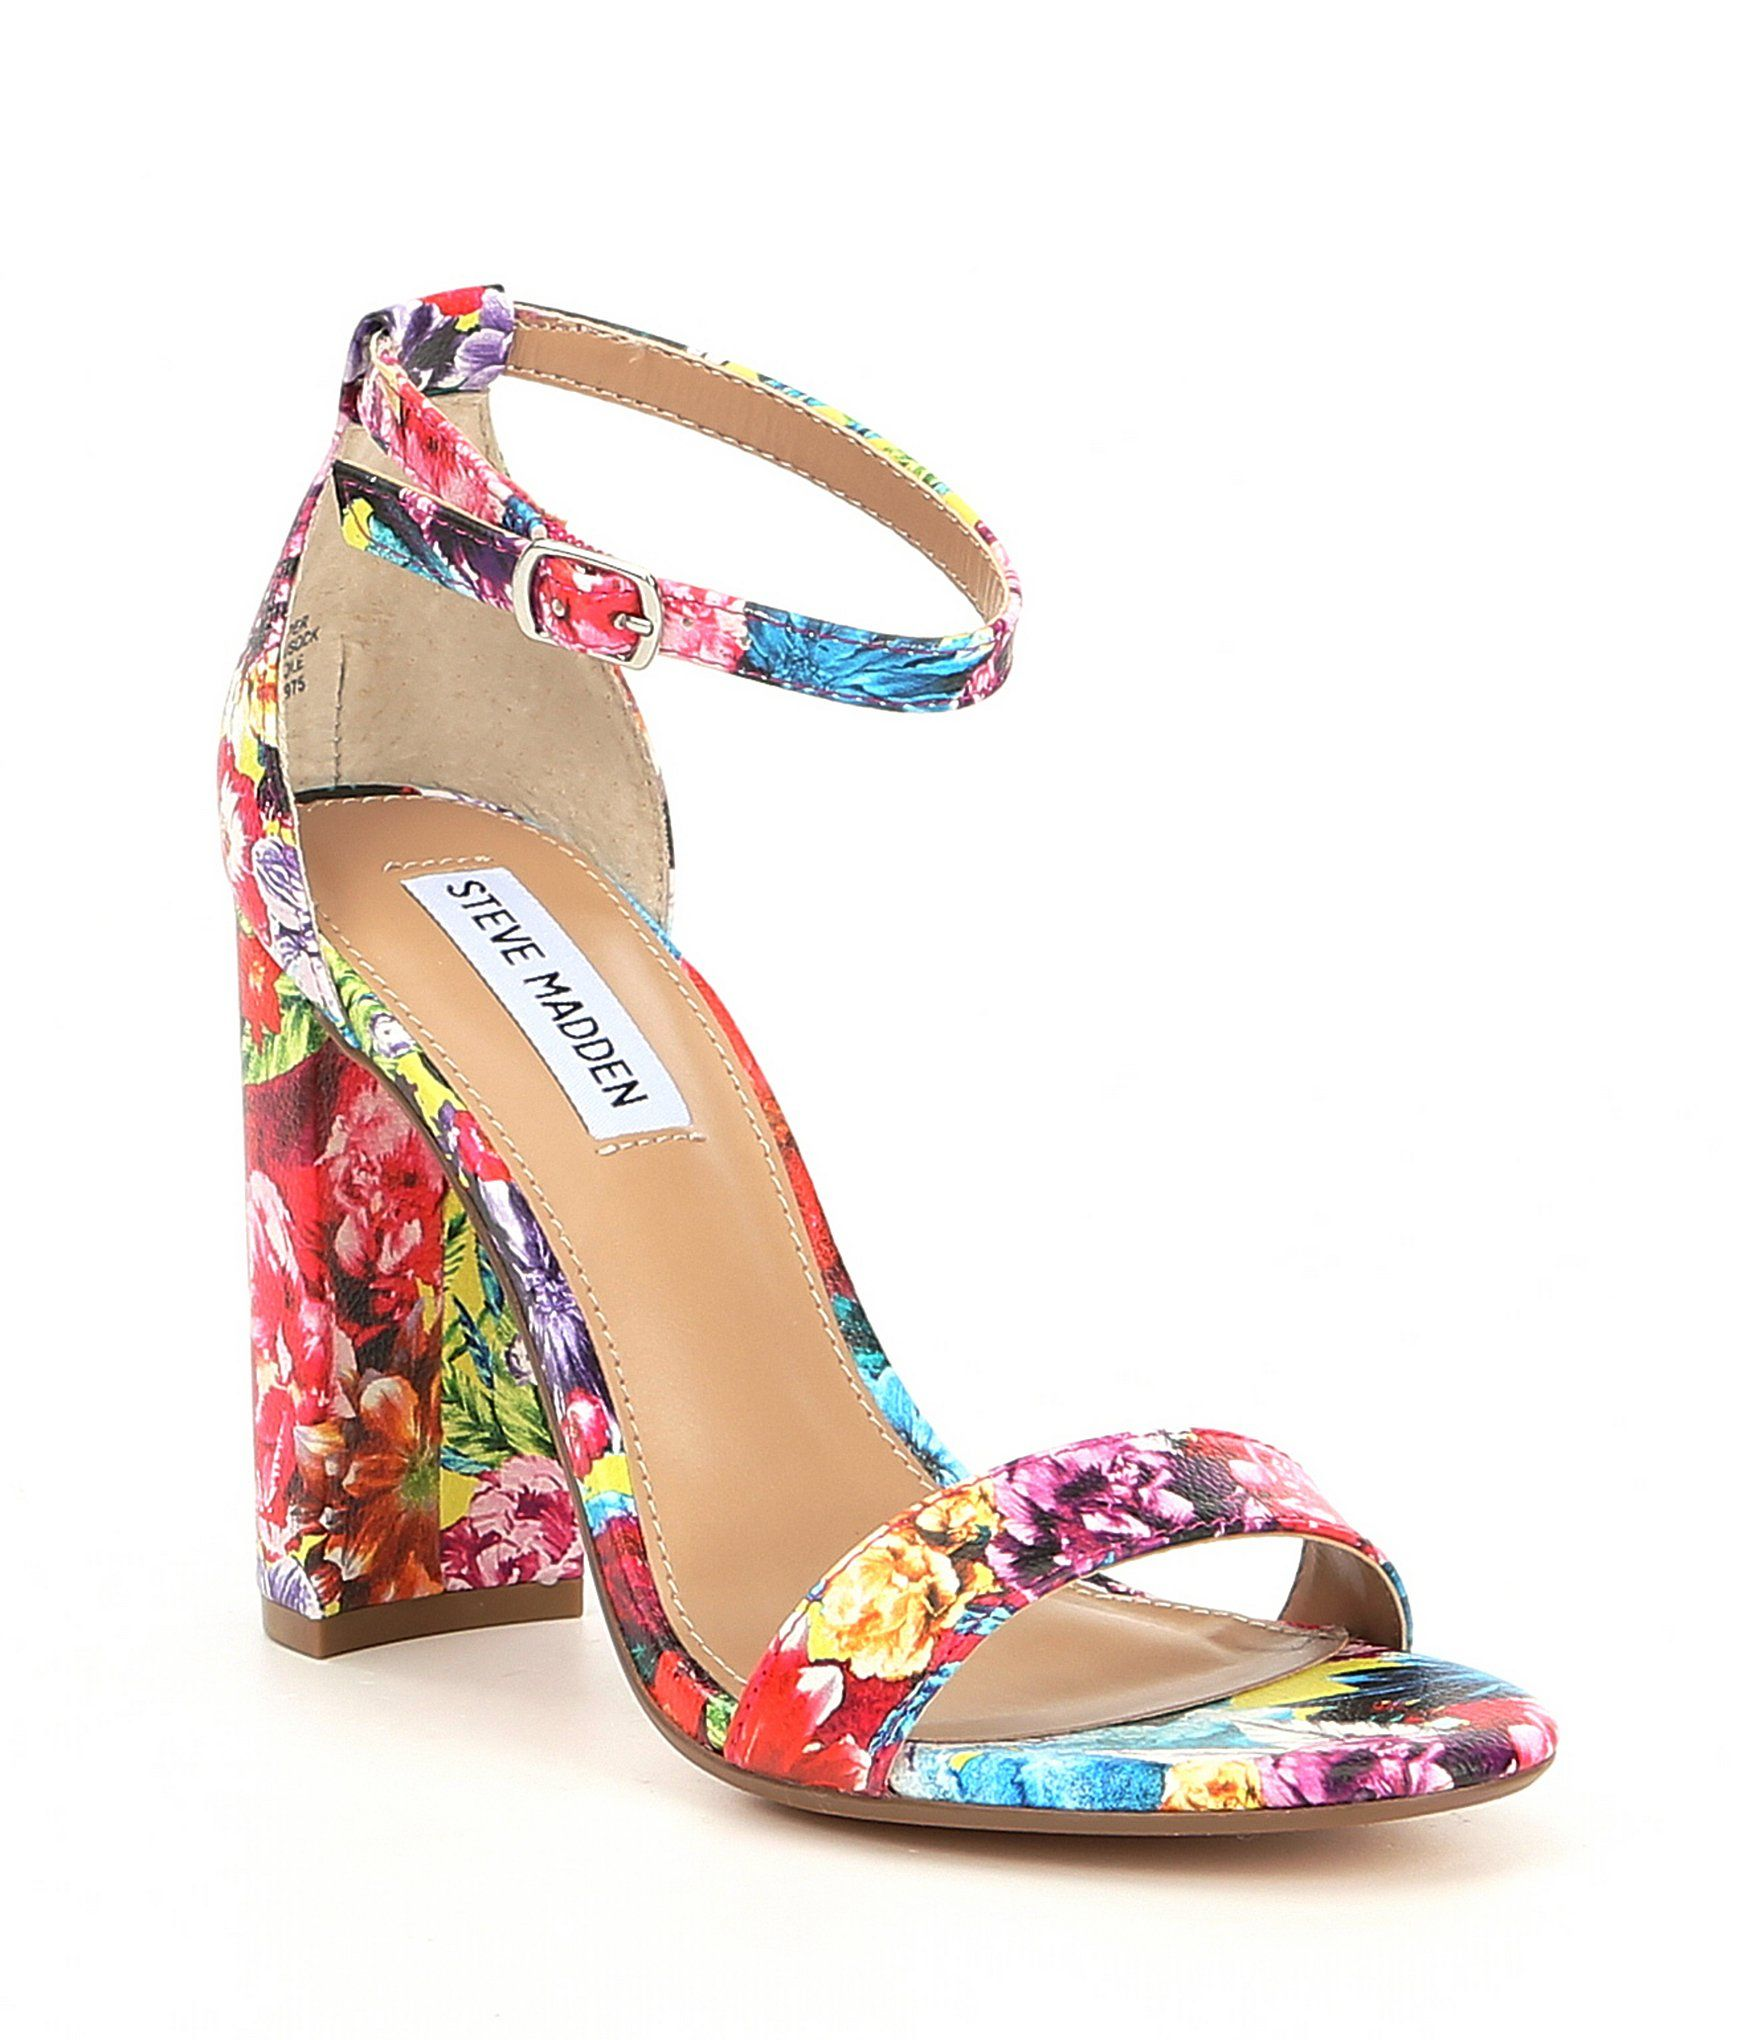 64767344111 Shop for Steve Madden Carrson Flower Multi Ankle Strap Block Heel Dress  Sandals at Dillards.com. Visit Dillards.com to find clothing